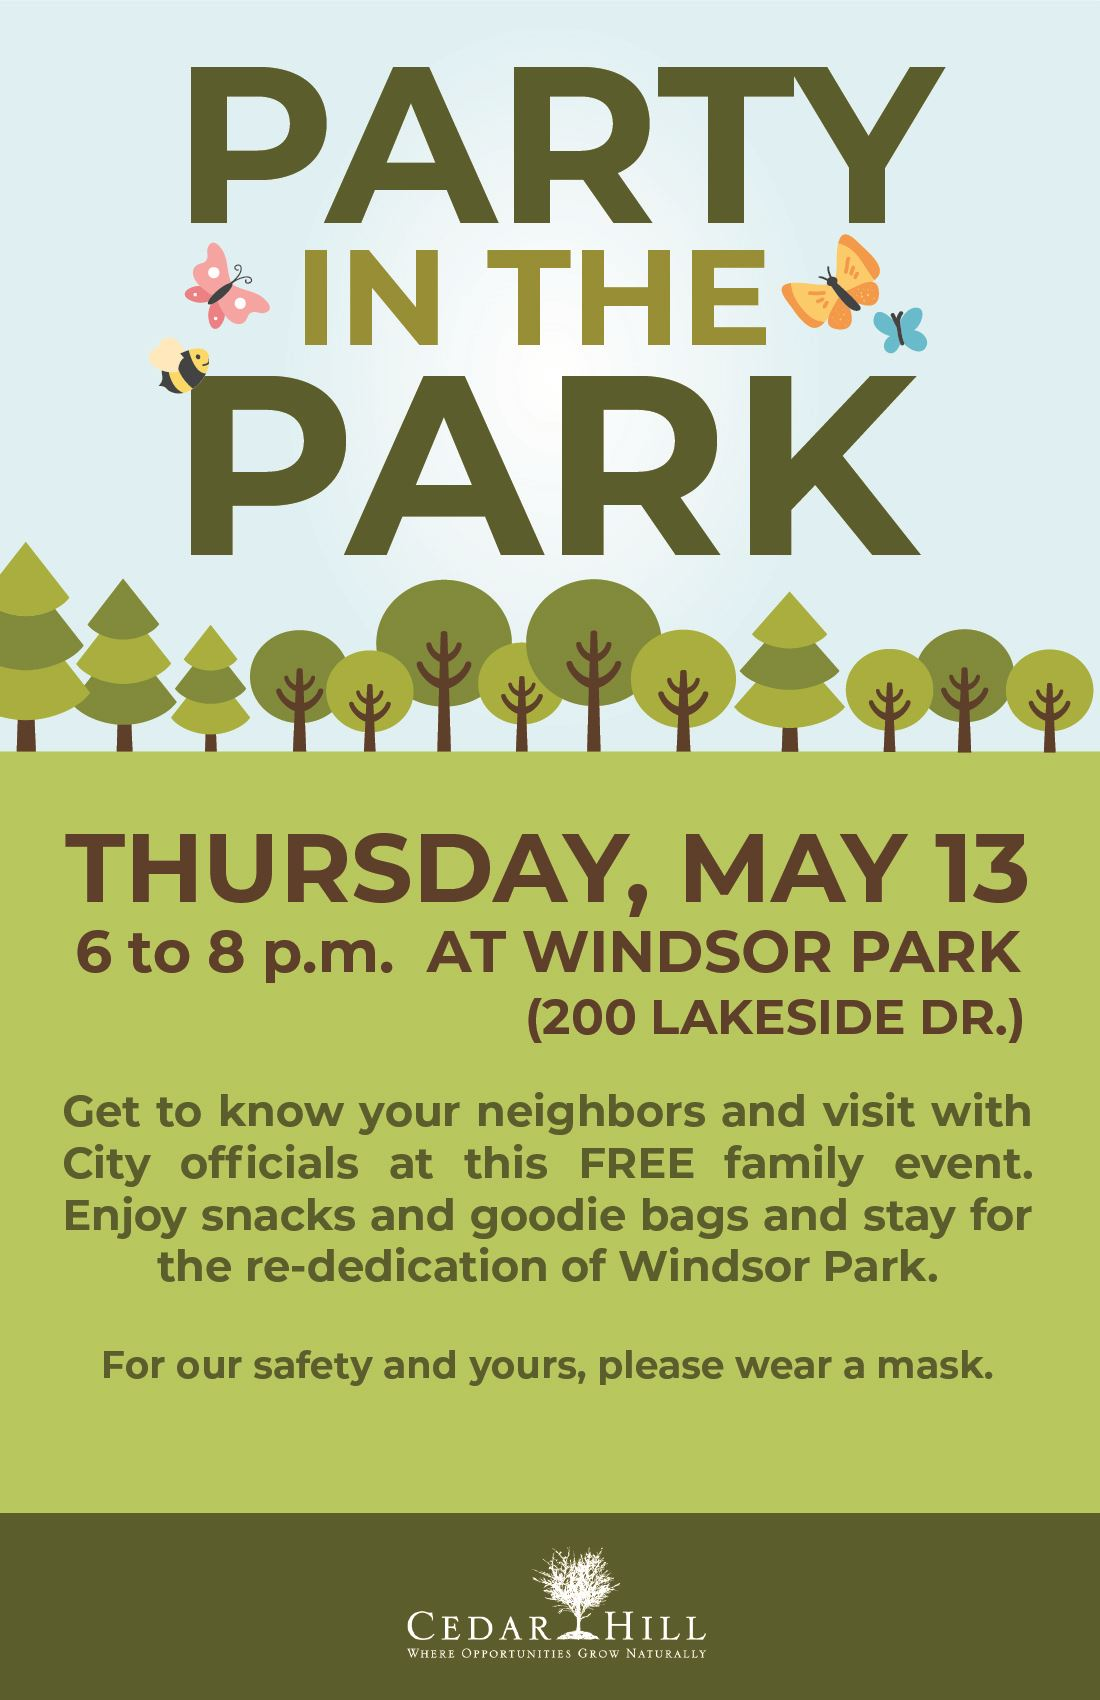 Party in the Park - Windsor Park